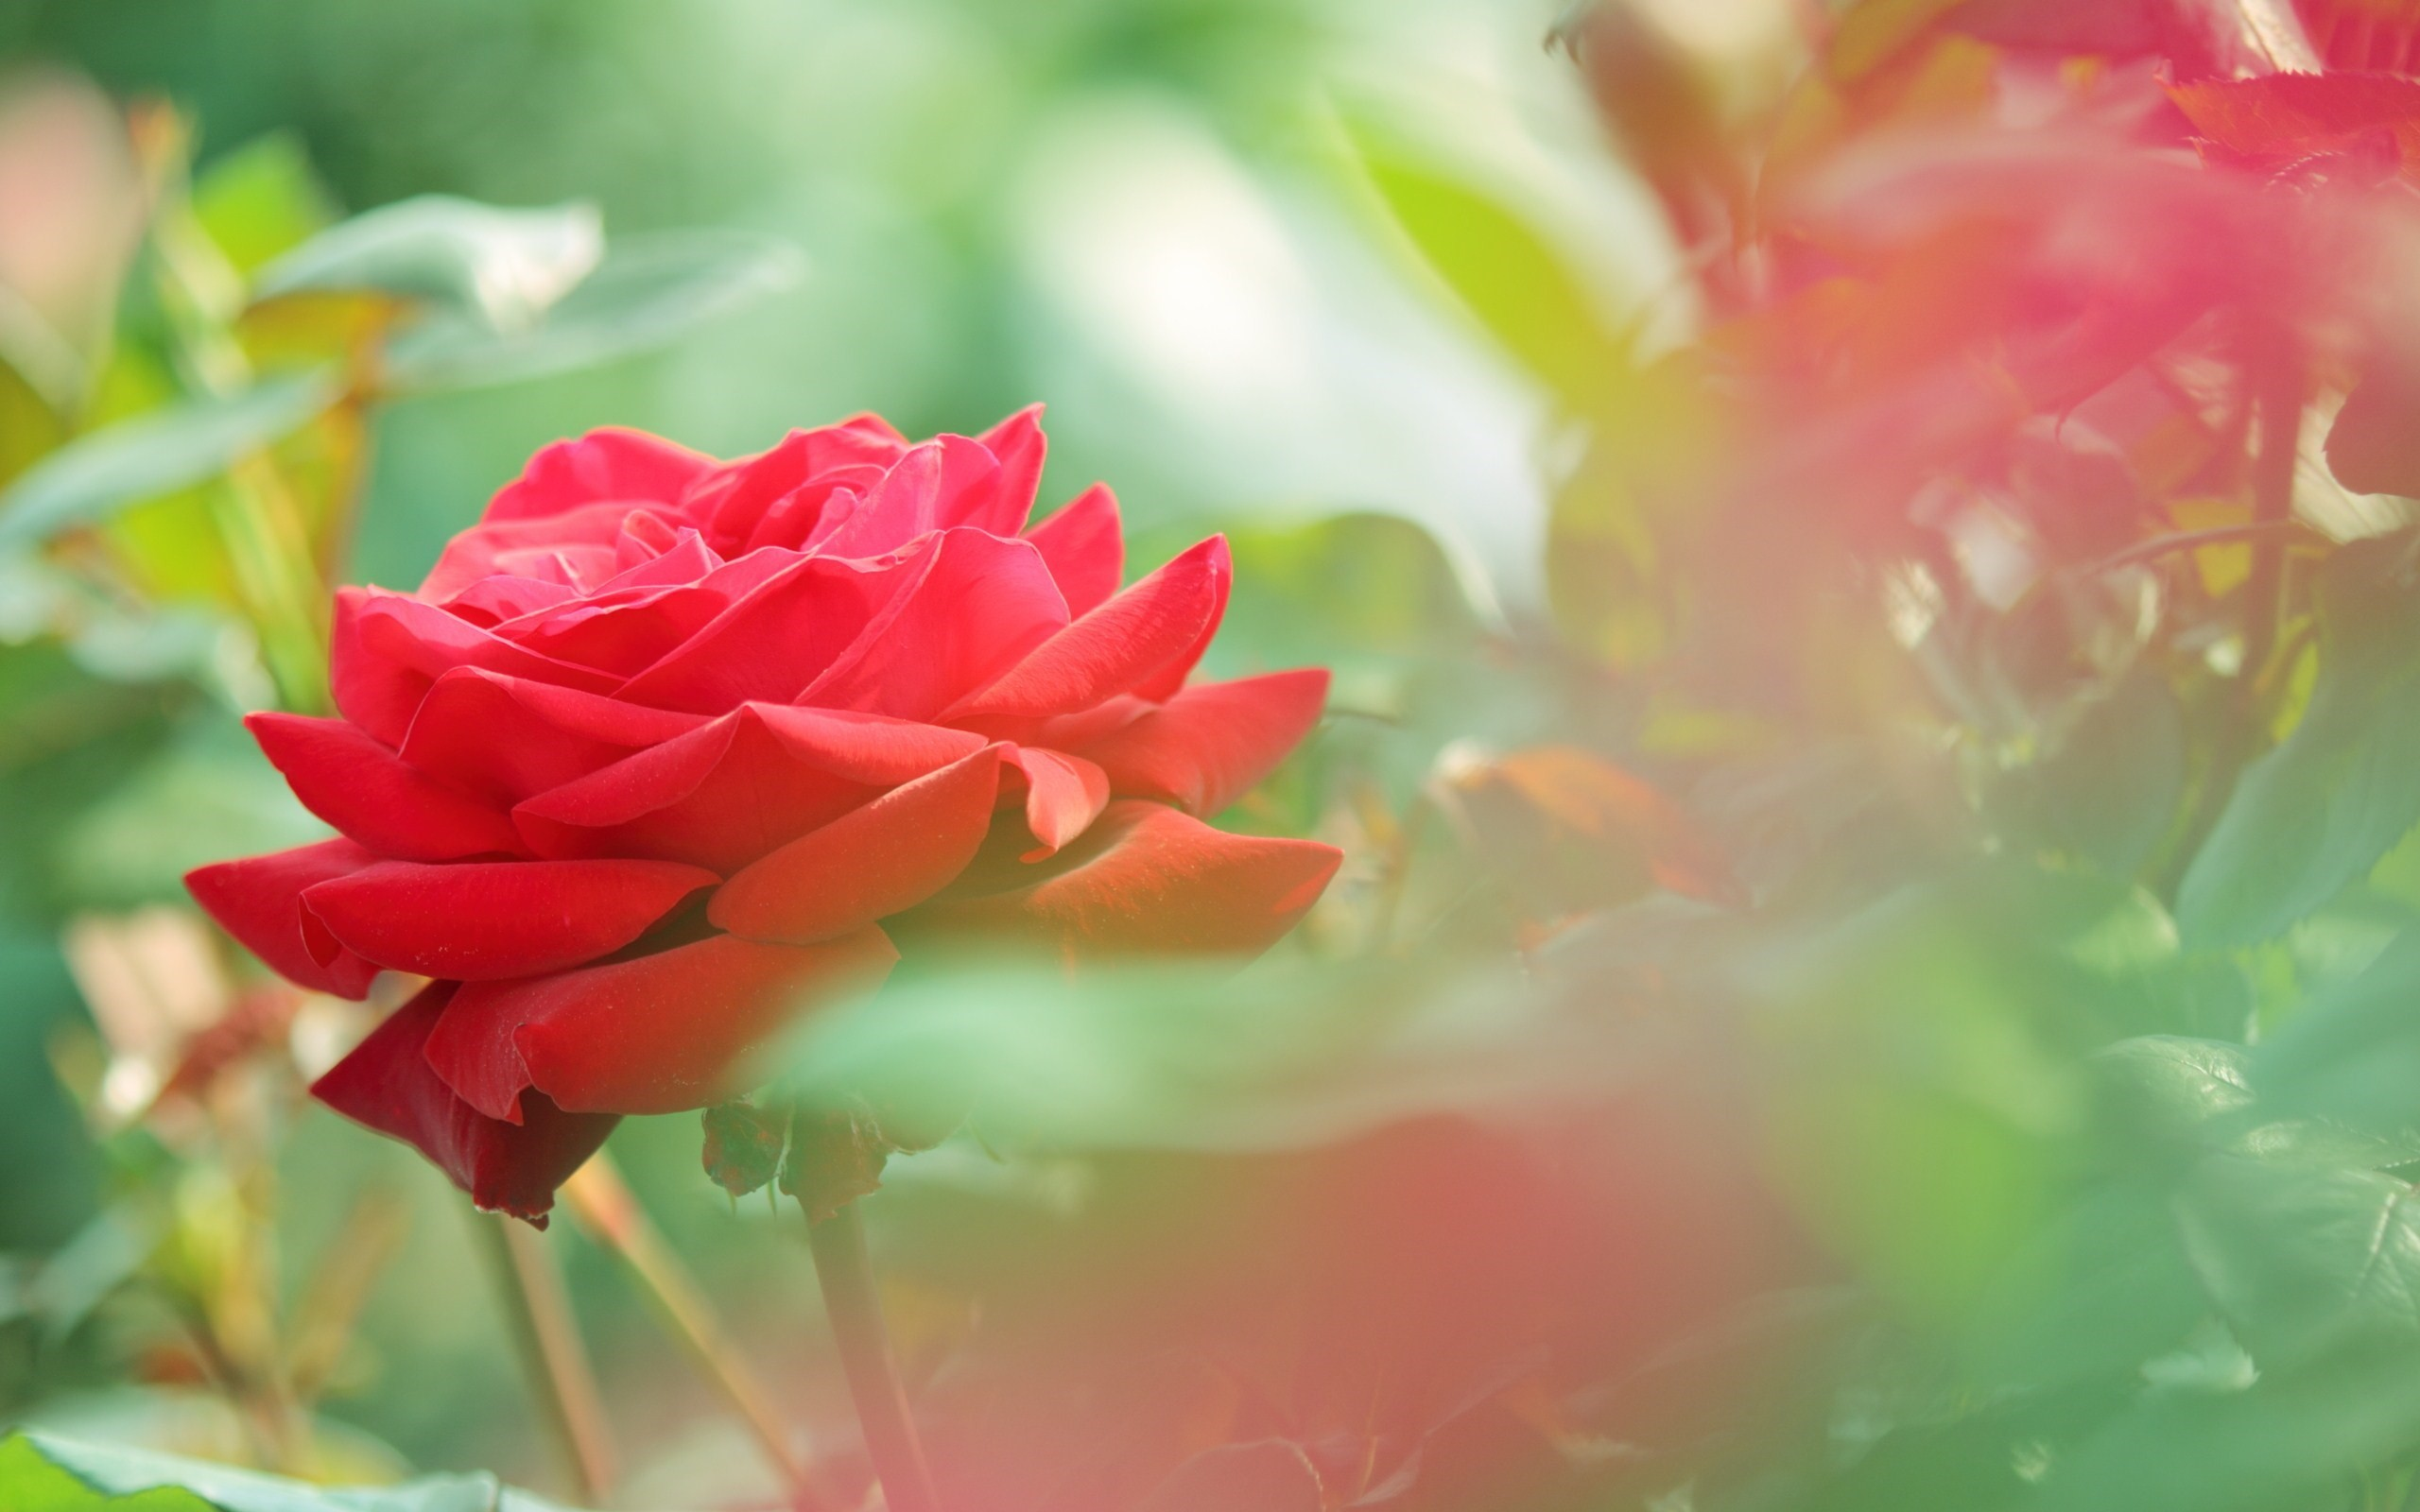 2560x1600 beautiful rose flowers images and wallpapers Download